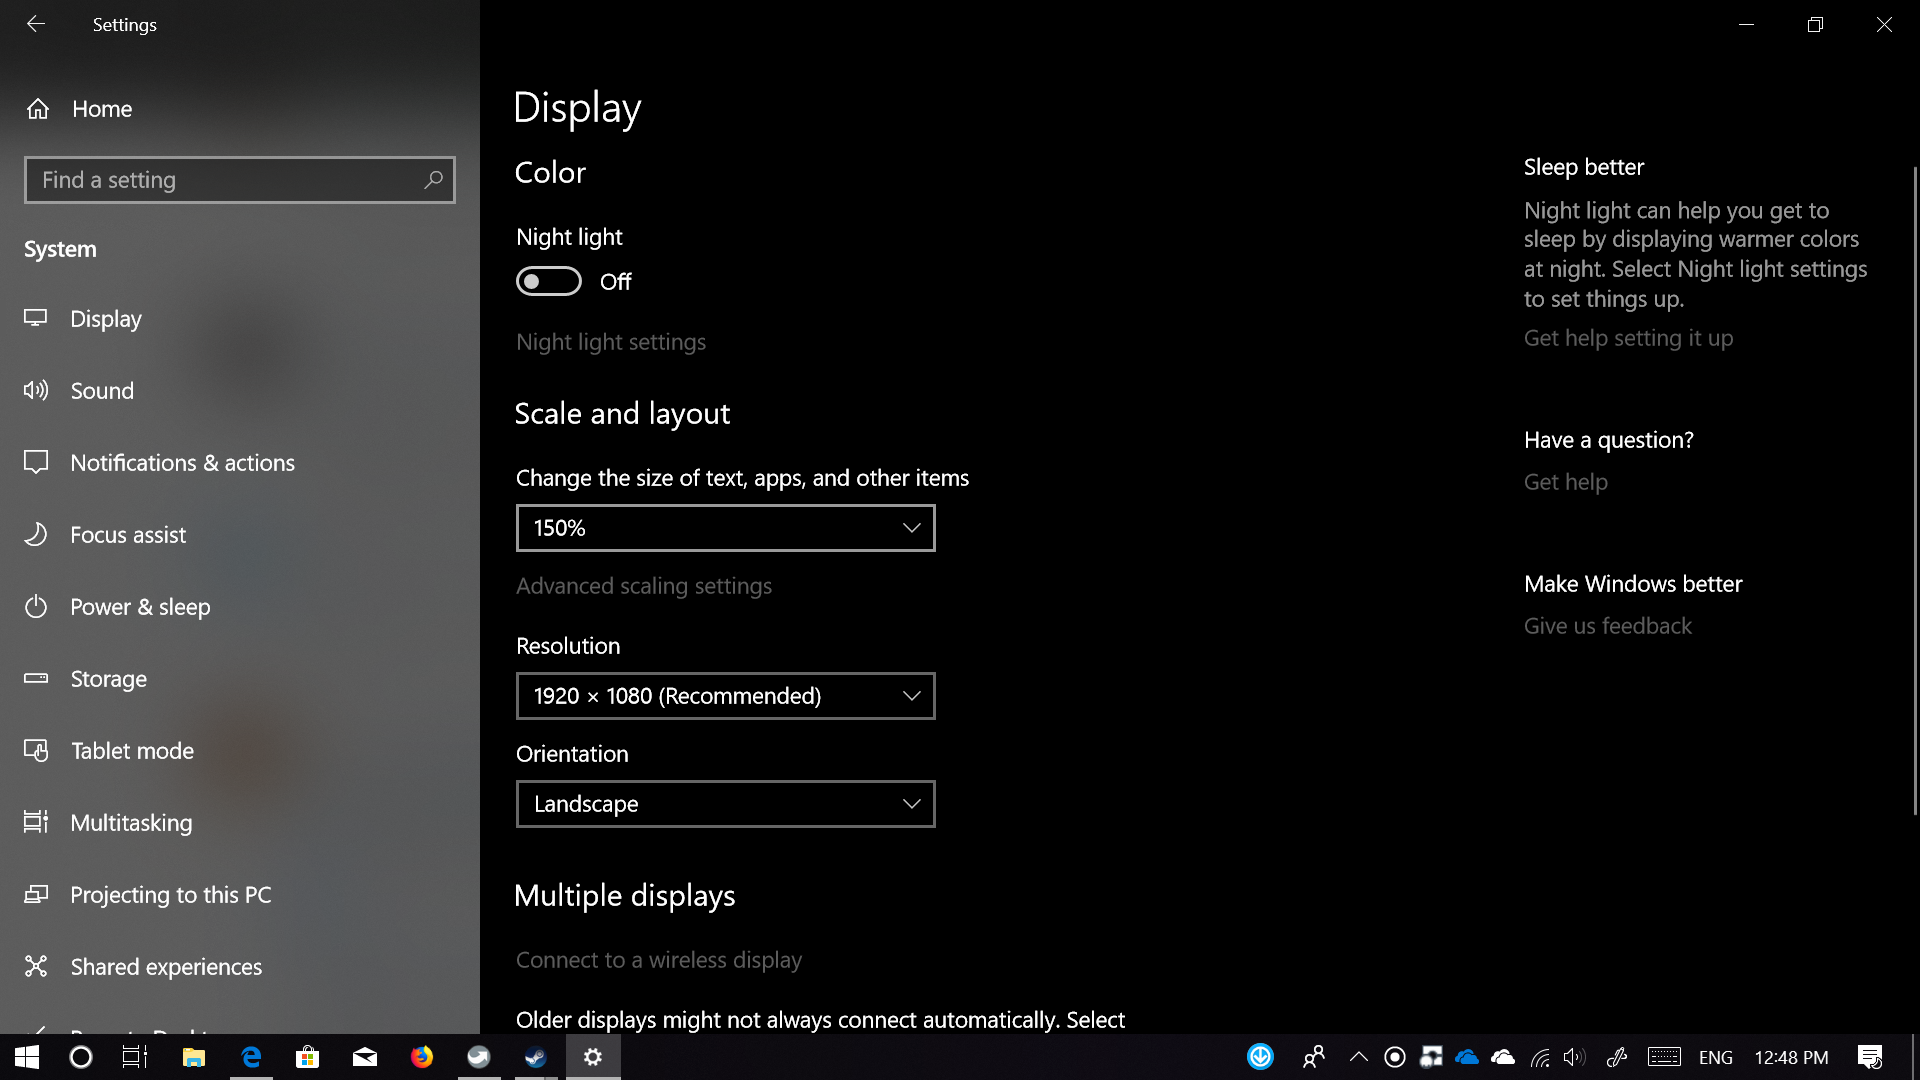 Add high DPI support for Windows 10 · Issue #19 · microsoft